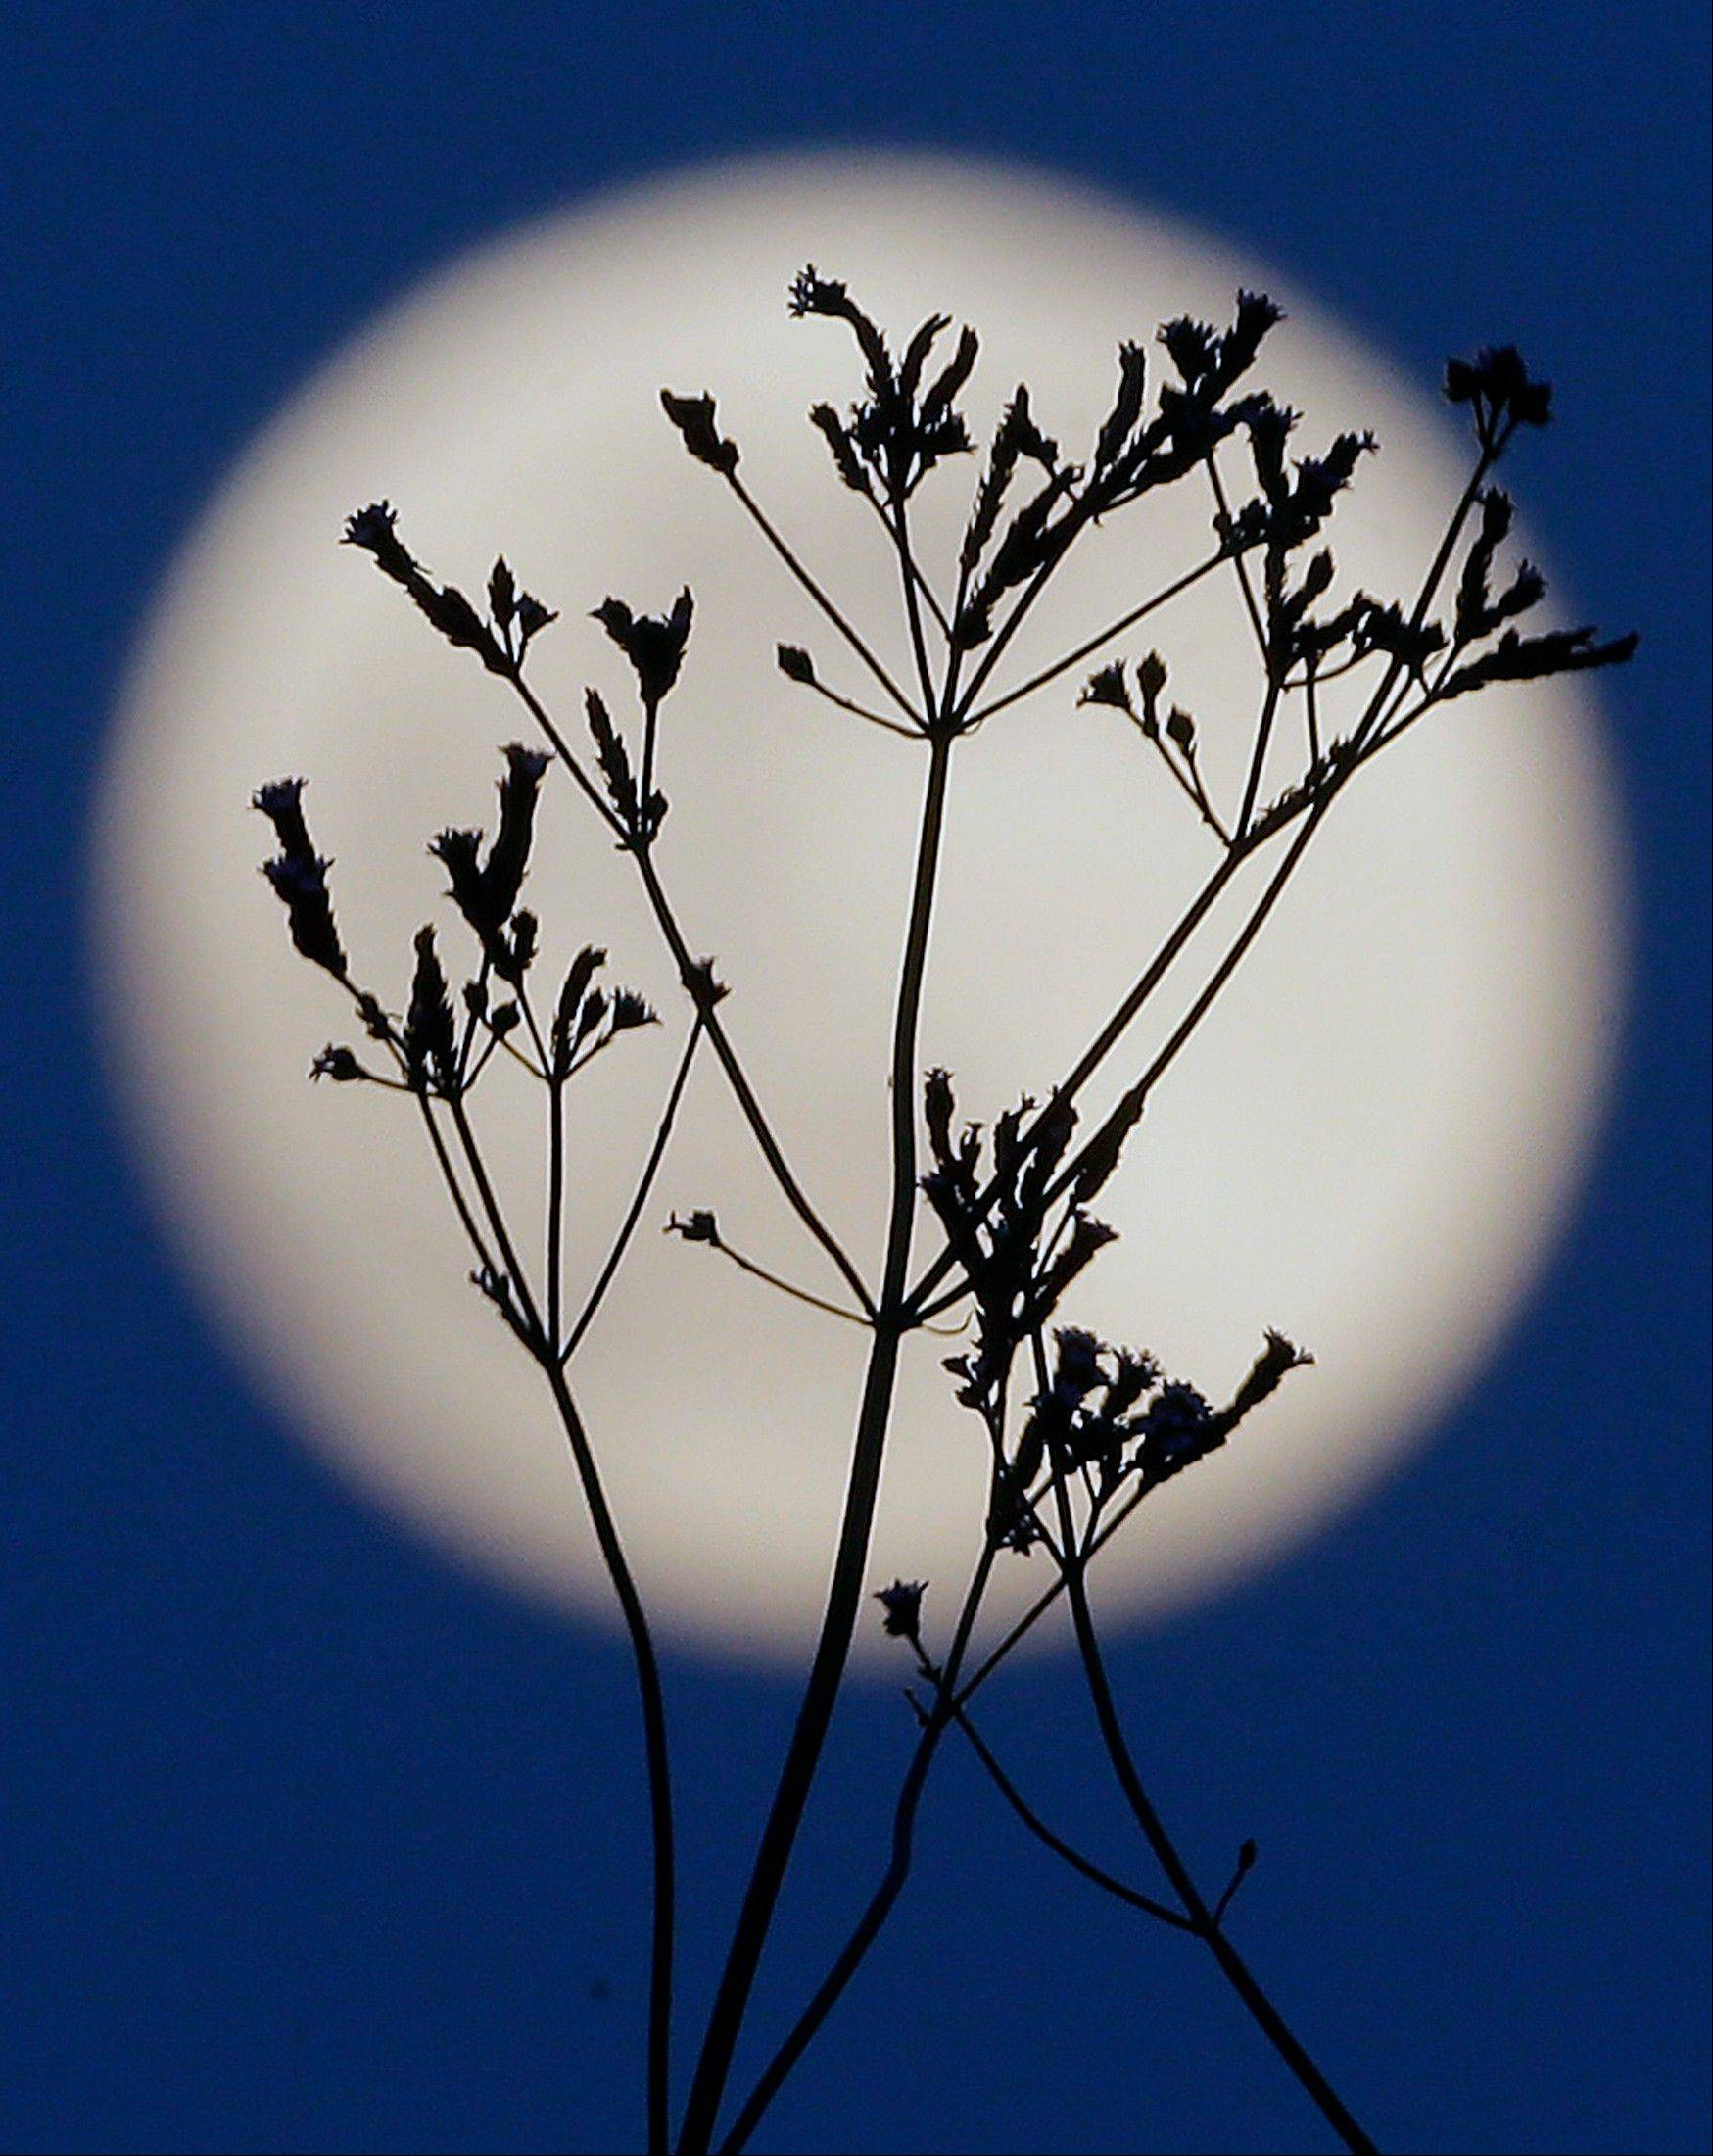 A �supermoon� rises behind roadside plants growing in Prattville, Ala., Saturday, June 22, 2013. The biggest and brightest full moon of the year graces the sky early Sunday as our celestial neighbor swings closer to Earth than usual. While the moon will appear 14 percent larger than normal, sky watchers won�t be able to notice the difference with the naked eye. Still, astronomers say it�s worth looking up and appreciating the cosmos.